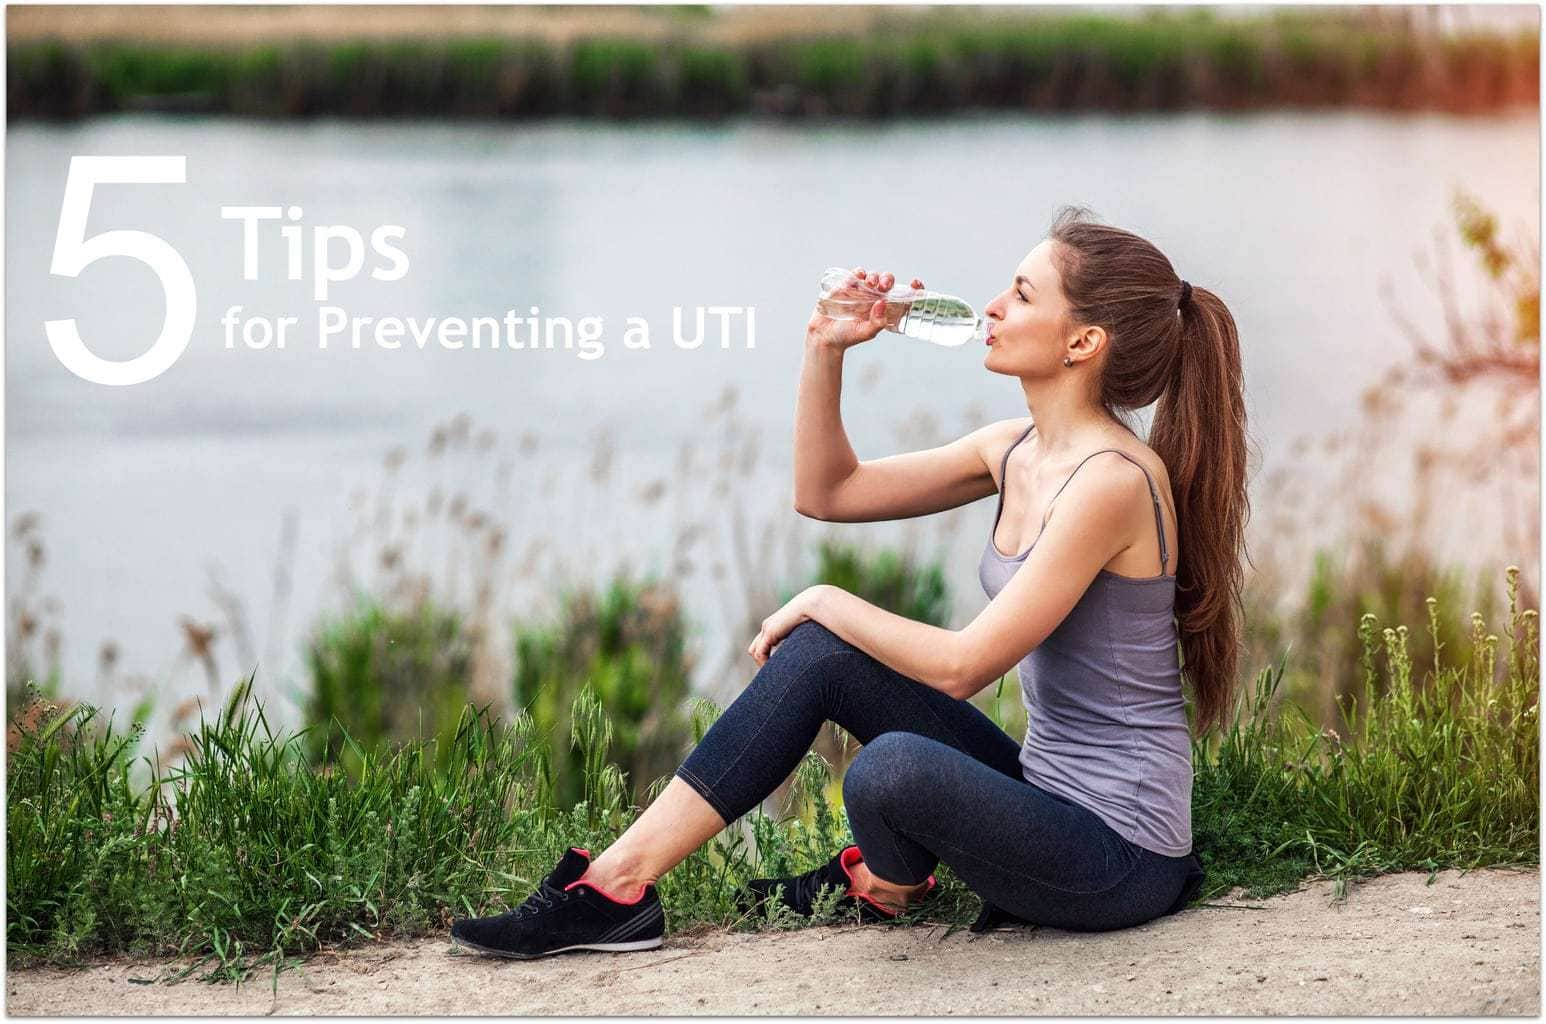 Uti While 35 Weeks Pregnant Tips For Preventing